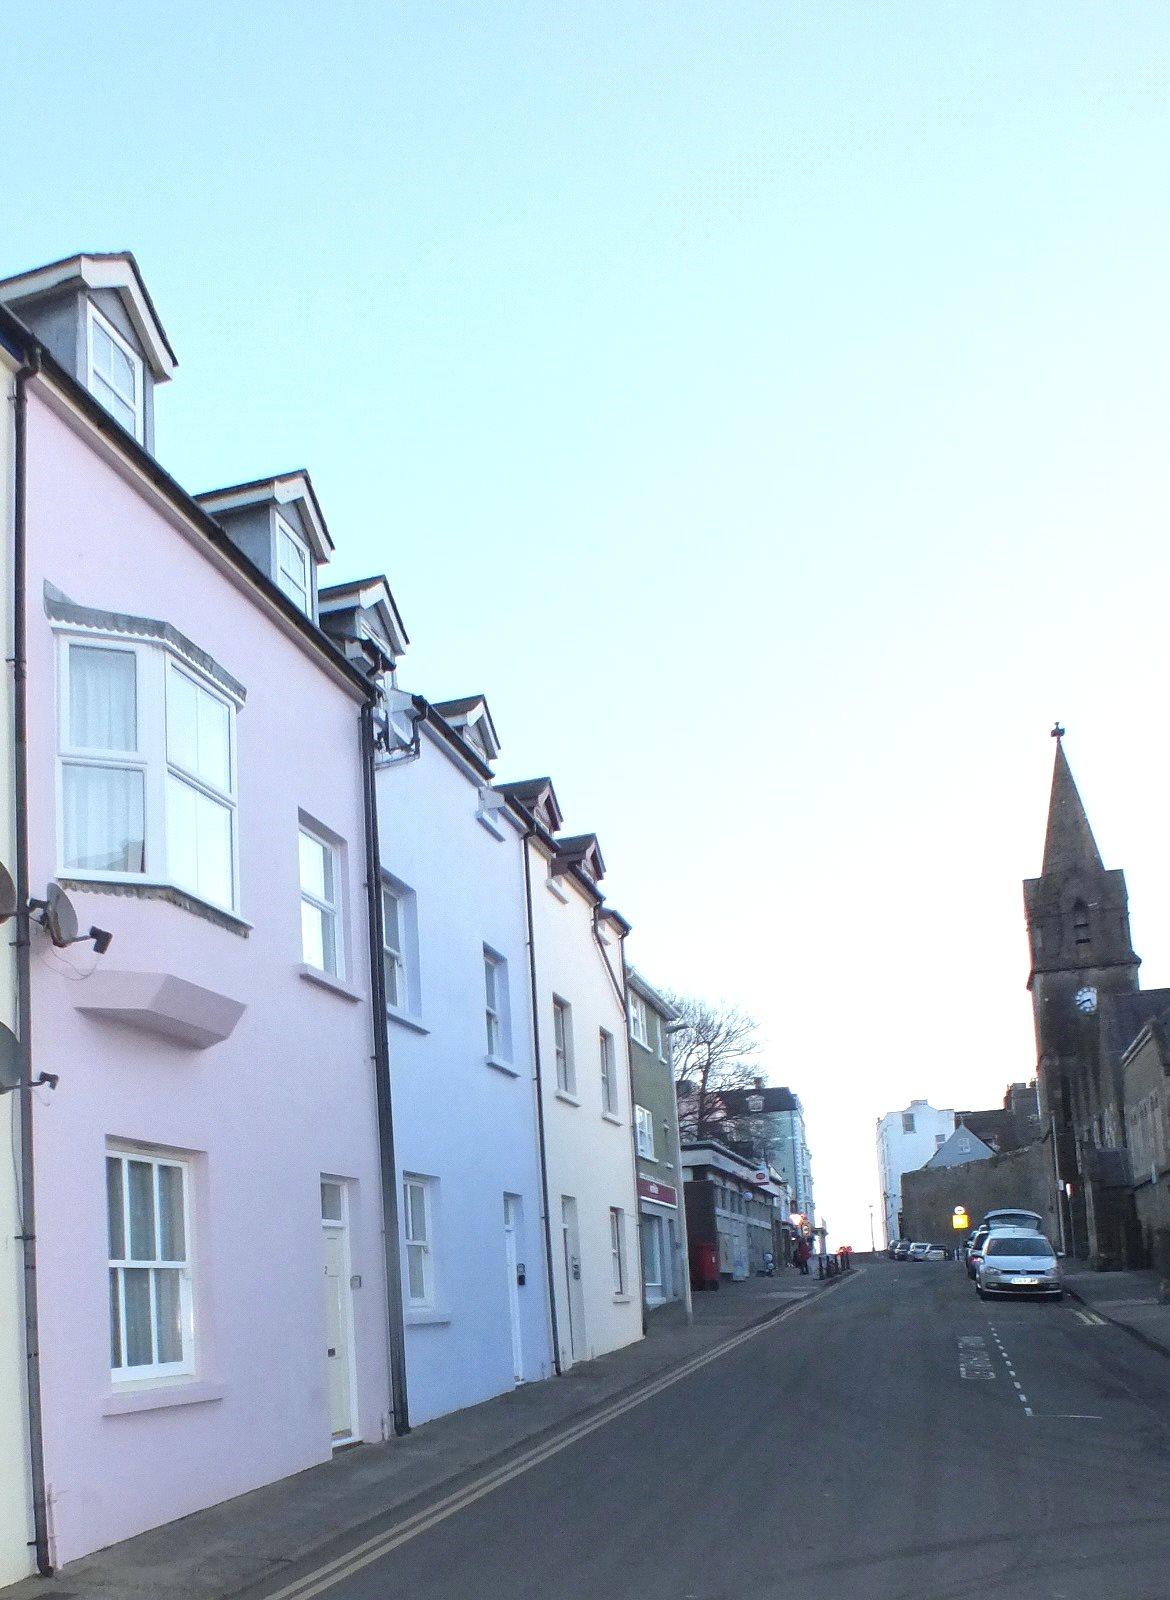 3 Bedrooms Maisonette Flat for sale in Arcadia House, Warren Street, Tenby